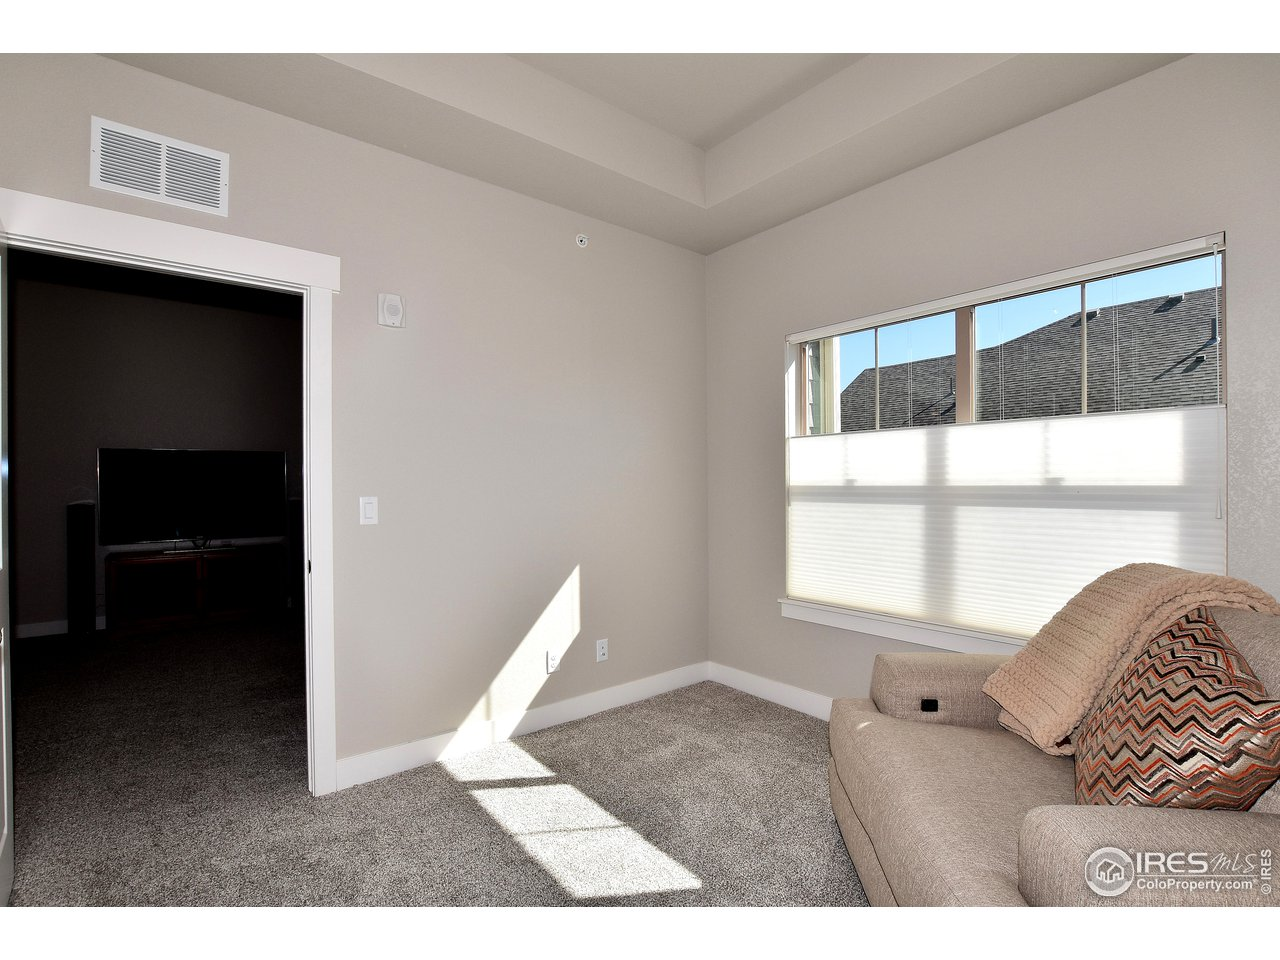 Detached garage #8 located steps from your unit